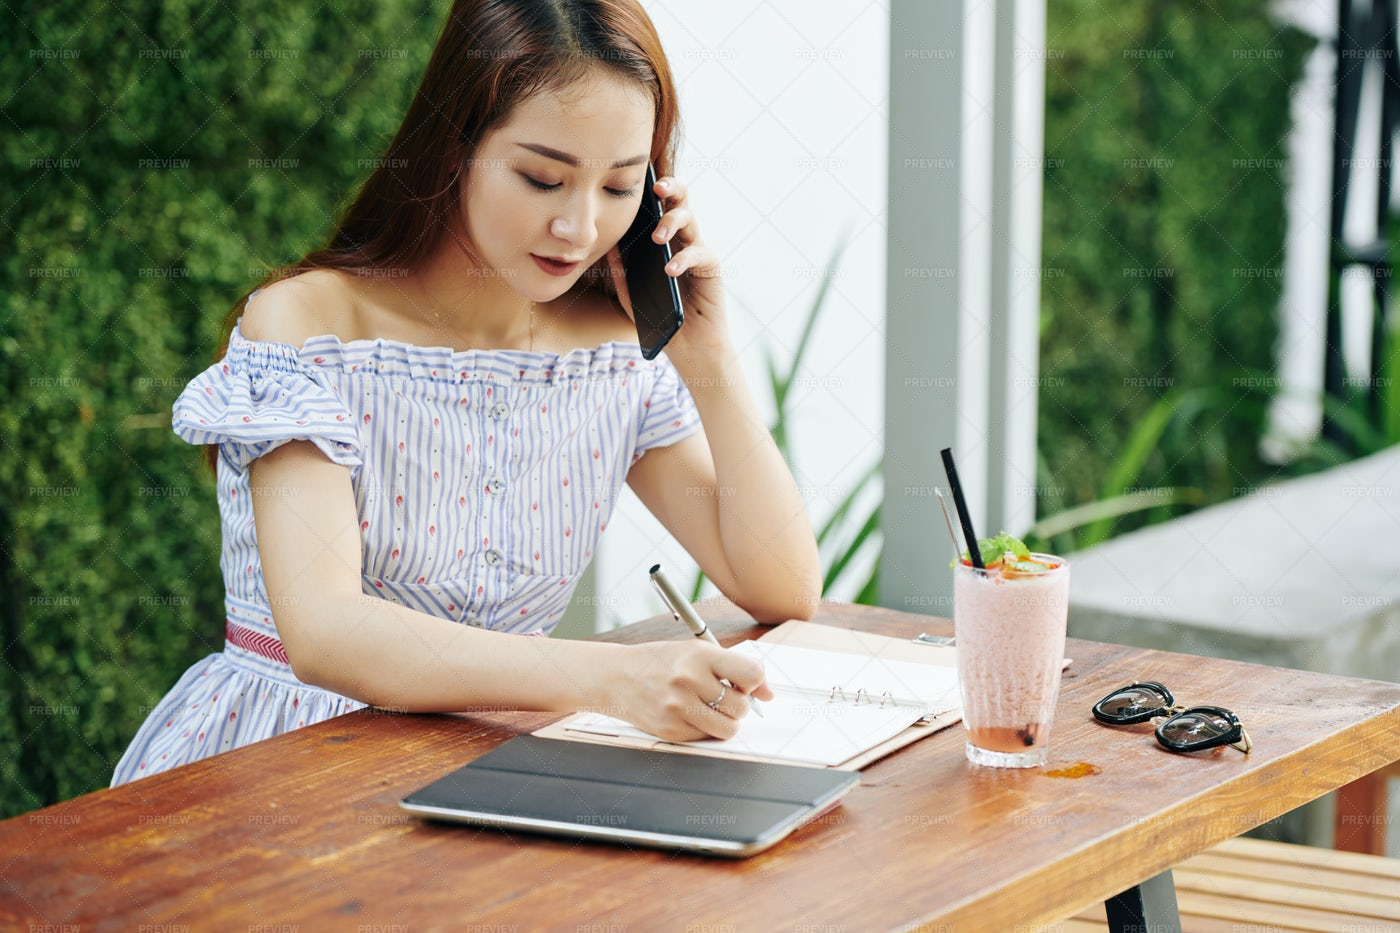 PRetty Young Woman Talking On Phone: Stock Photos